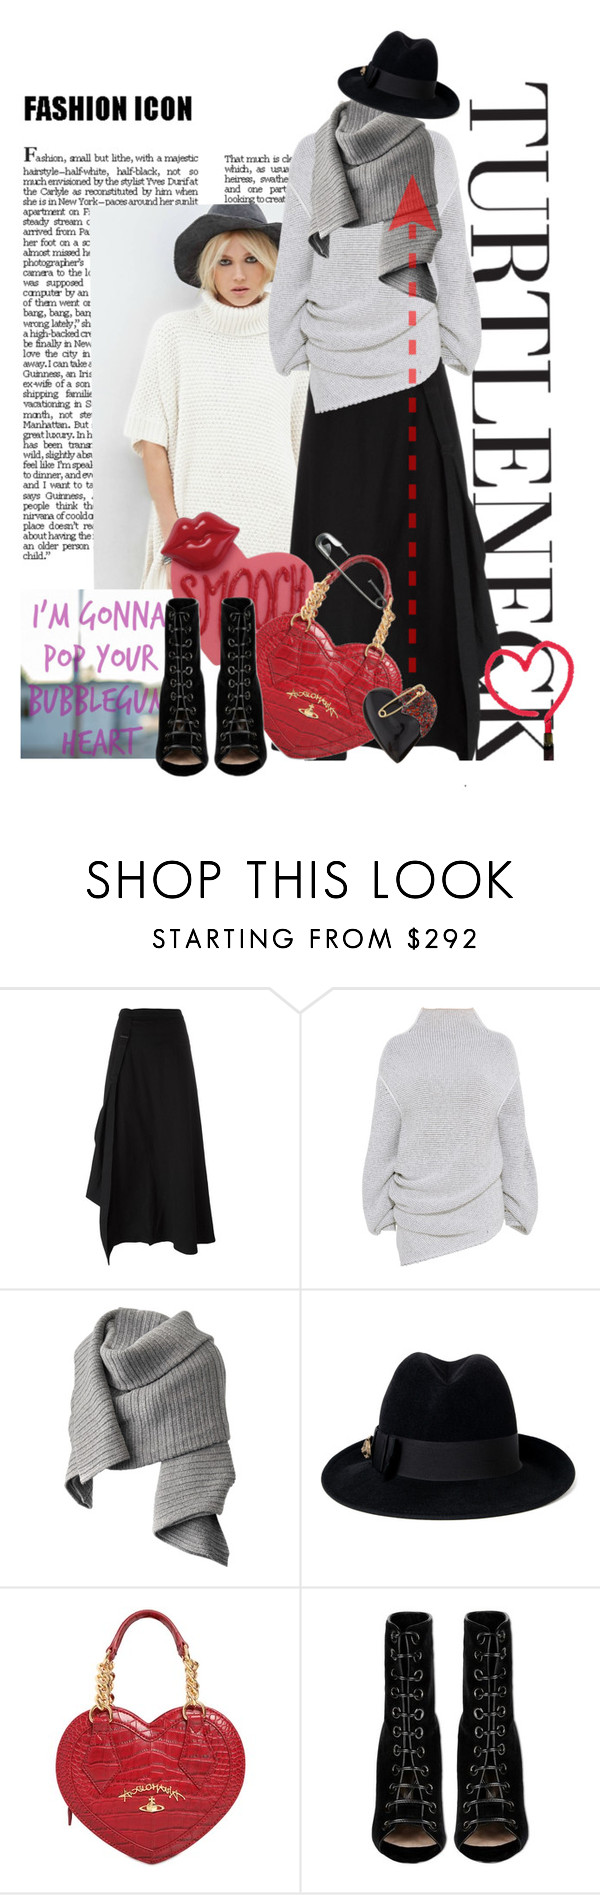 """""""I'm gonna pop your bubblegum heart!"""" by no-where-girl ❤ liked on Polyvore featuring Yohji Yamamoto, STELLA McCARTNEY, Acne Studios, Gucci, Vivienne Westwood, Barbara Bui and Alexis Bittar"""